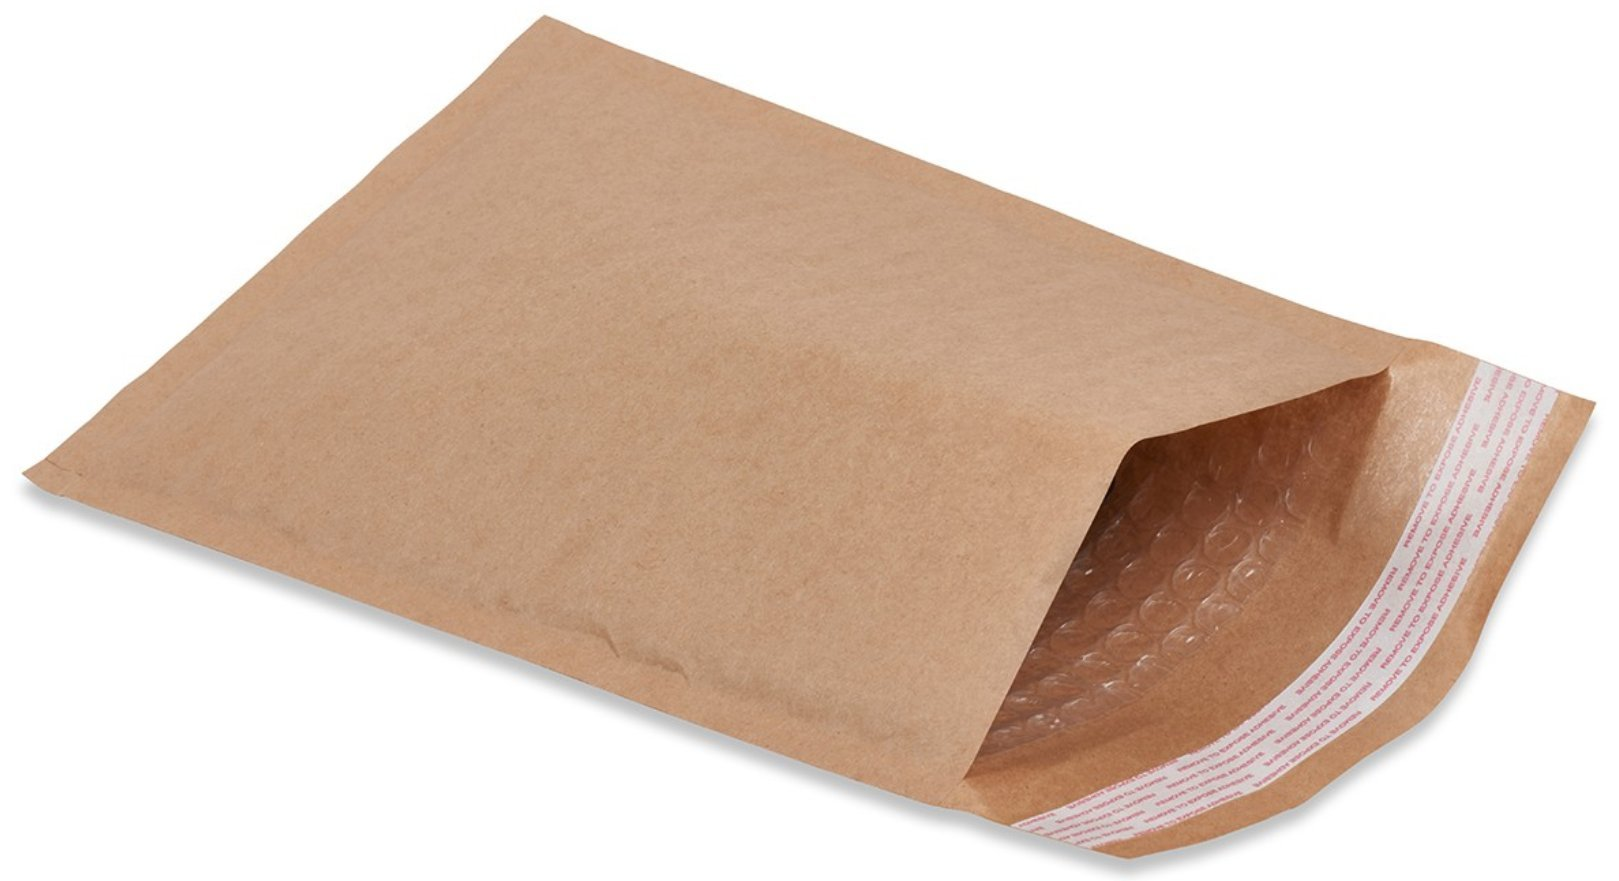 Natural Kraft bubble mailers 12.5 x 18 Brown Padded envelopes 12 1/2 x 18 by Amiff. Pack of 10 Kraft Paper cushion envelopes. Exterior size 12.5 x 19 (12 1/2 x 19). Peel and Seal. Mailing, shipping.